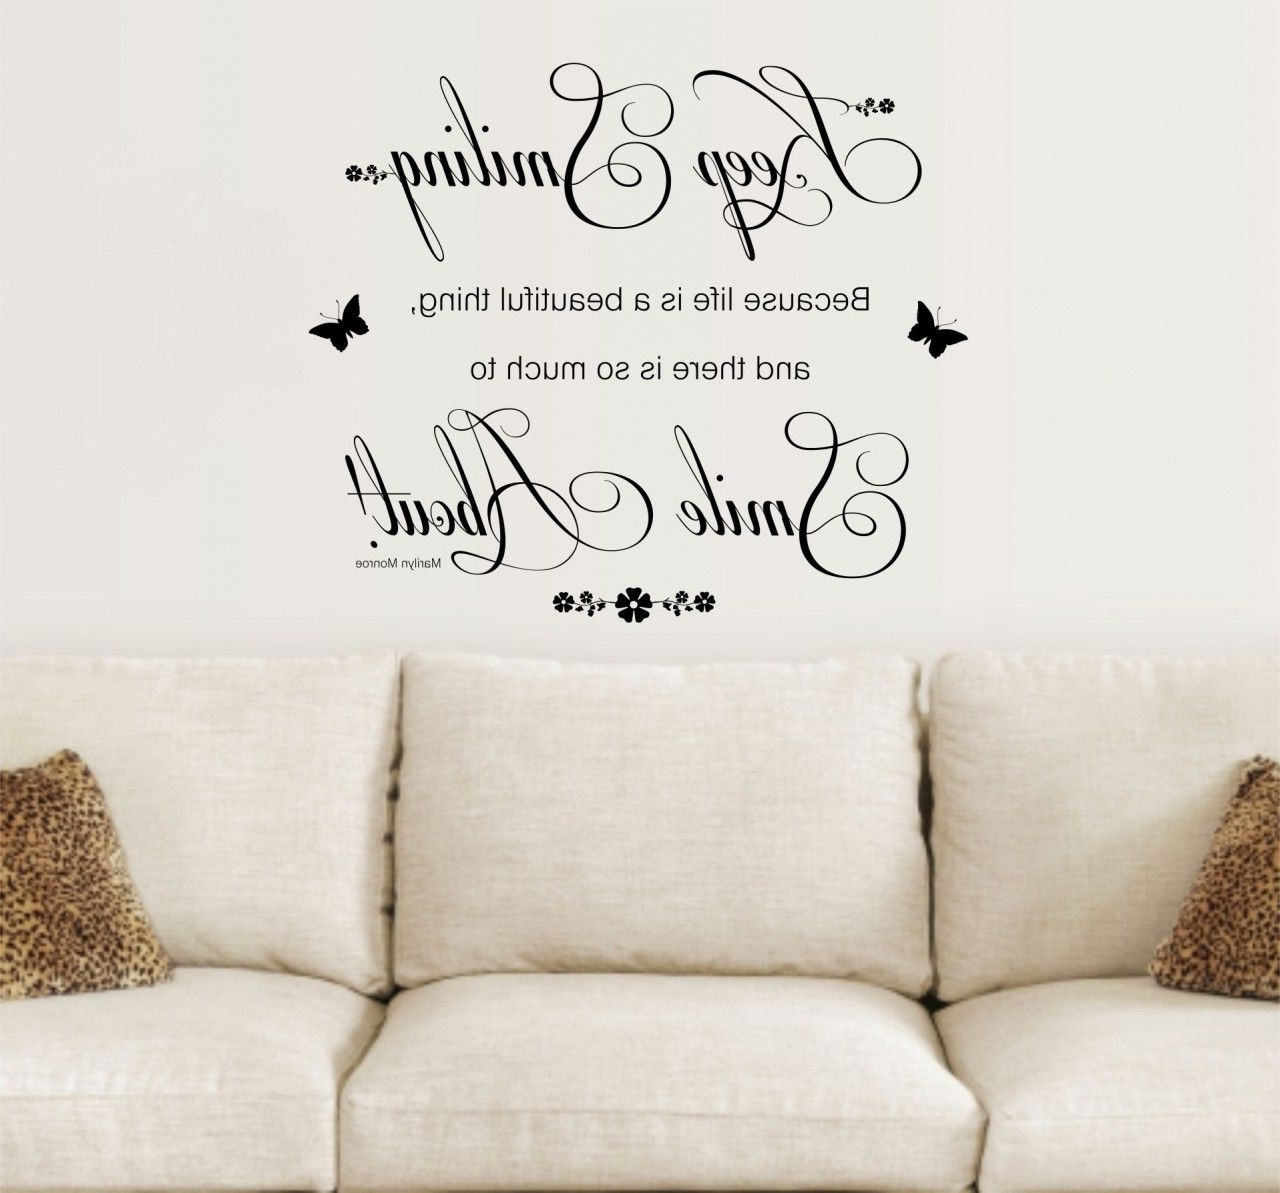 Inspirational Sayings Wall Art Within Popular Wall Quotes And Sayings (View 2 of 15)